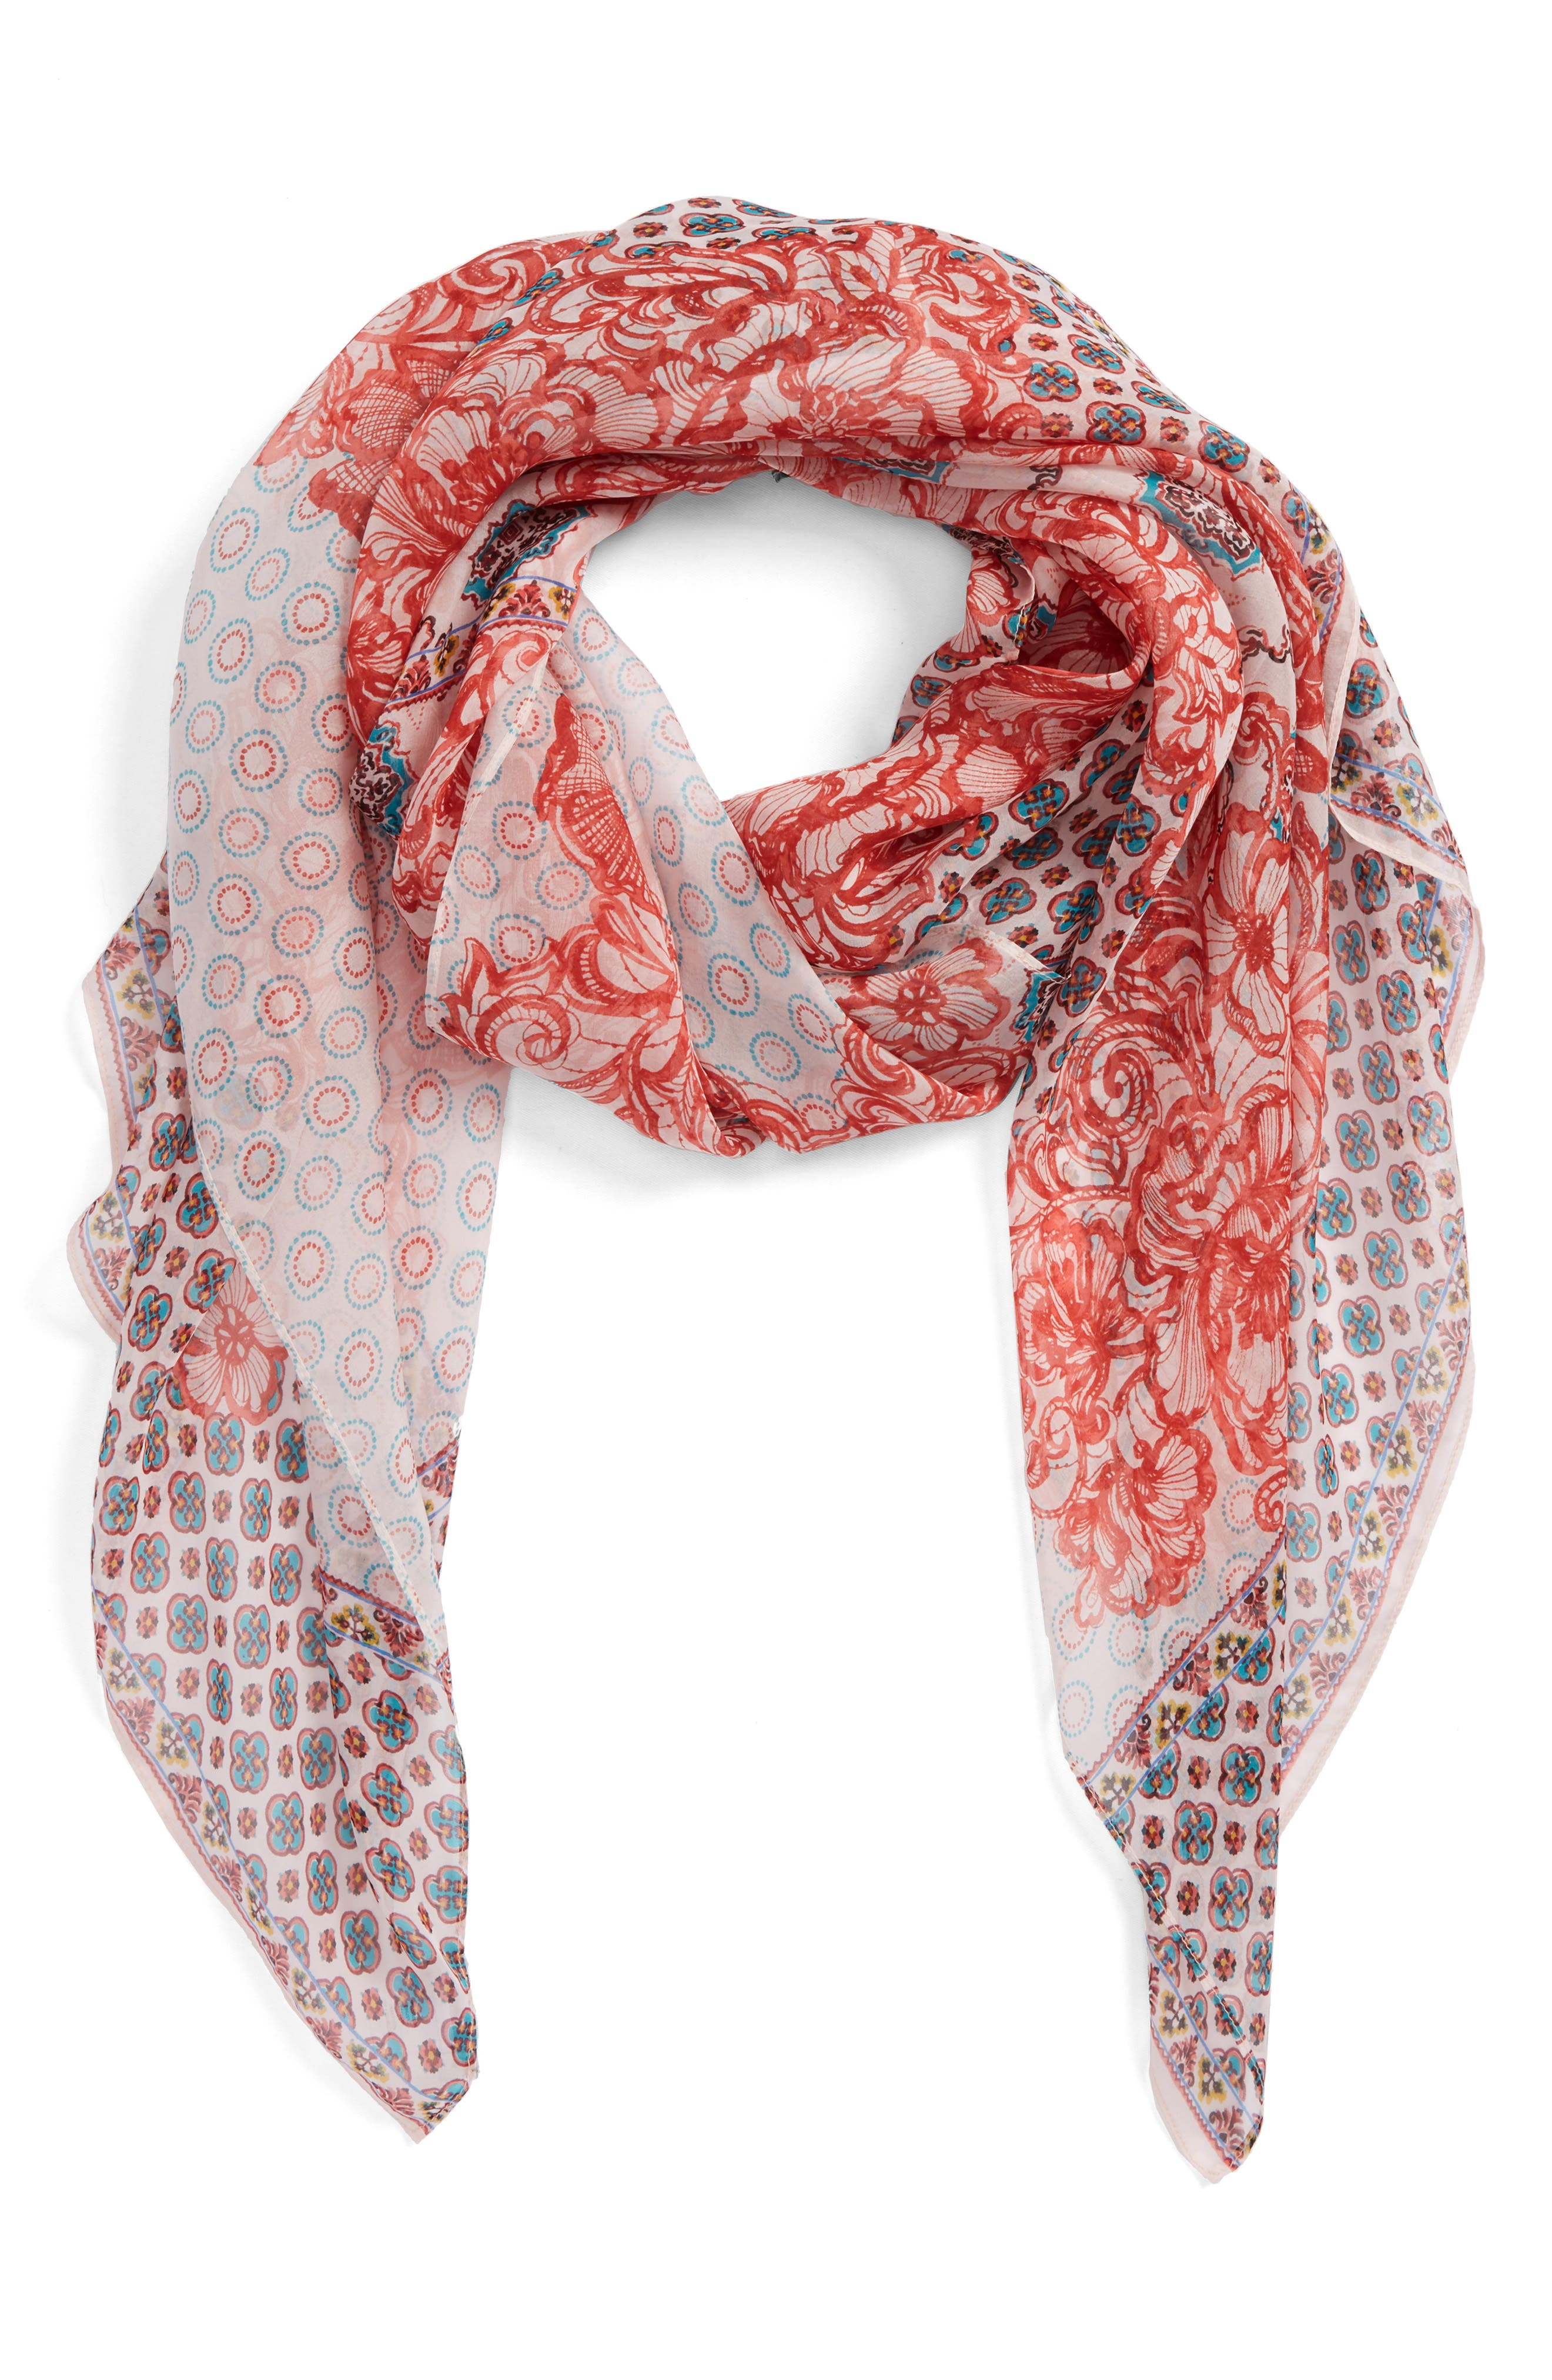 Silk Chiffon Oblong Scarf,                             Main thumbnail 1, color,                             Red Ottoman Lace